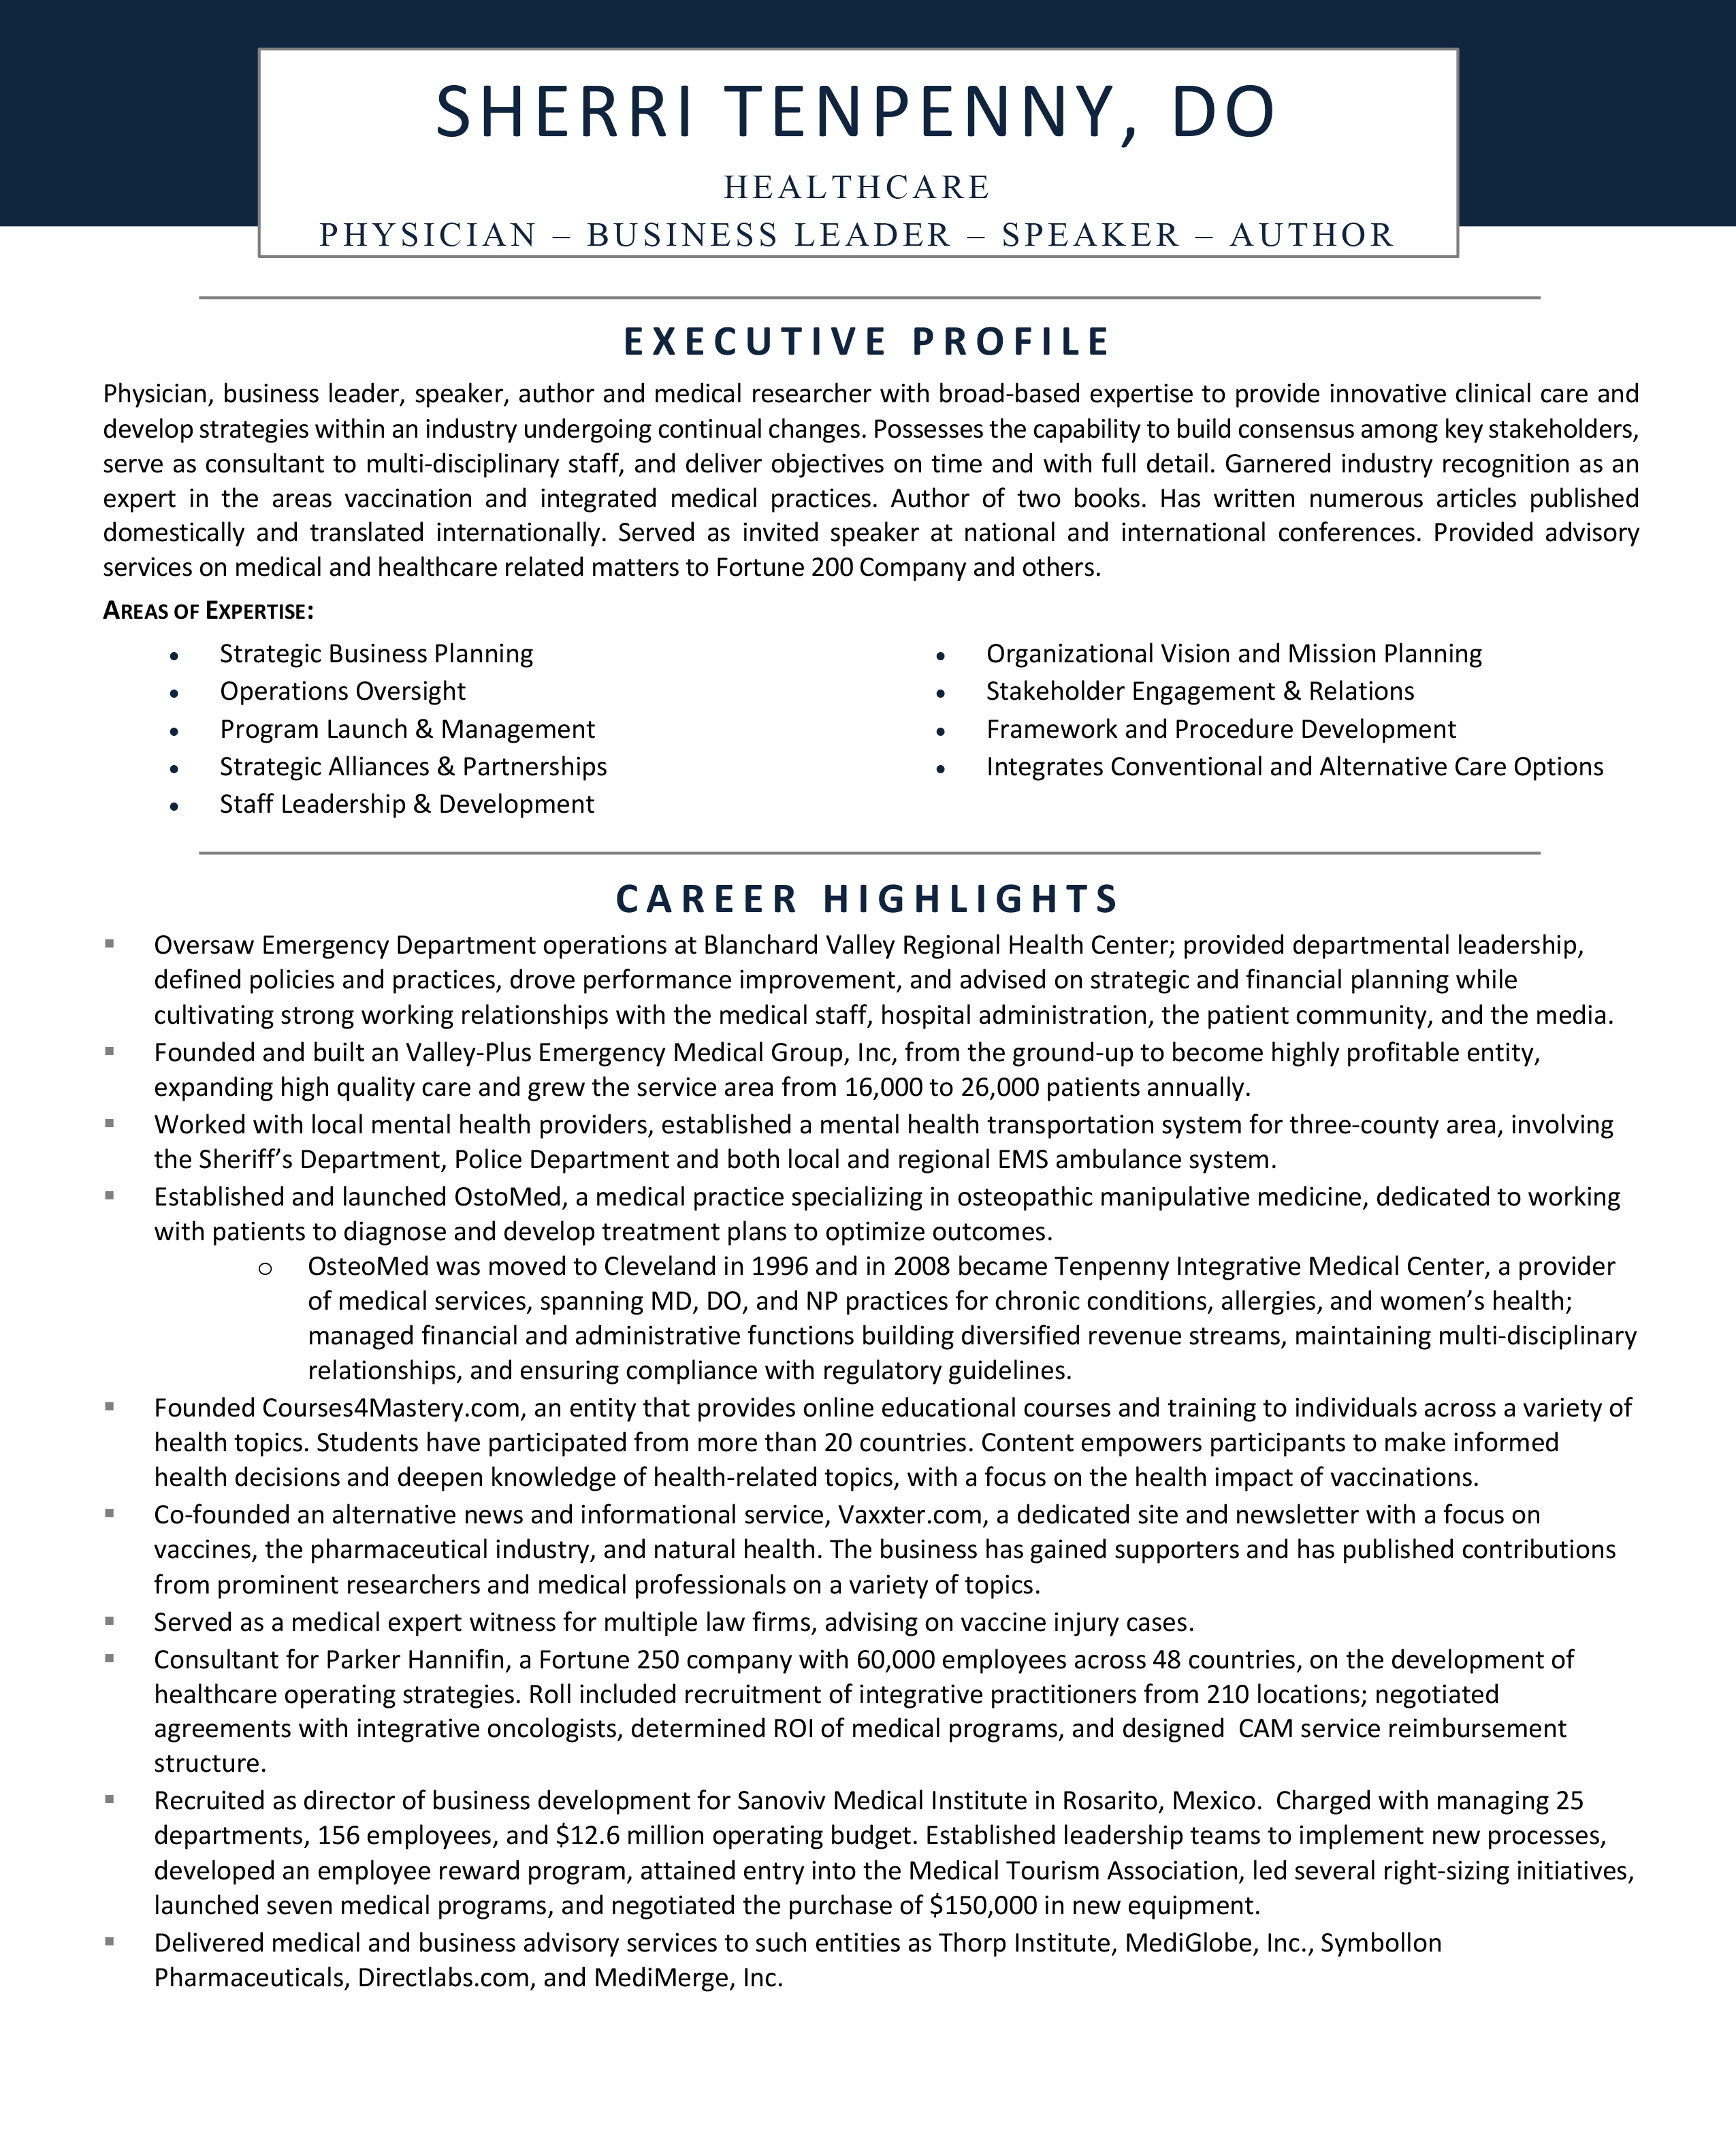 Tenpenny-Resume-4pgs for photoshop-1.jpg